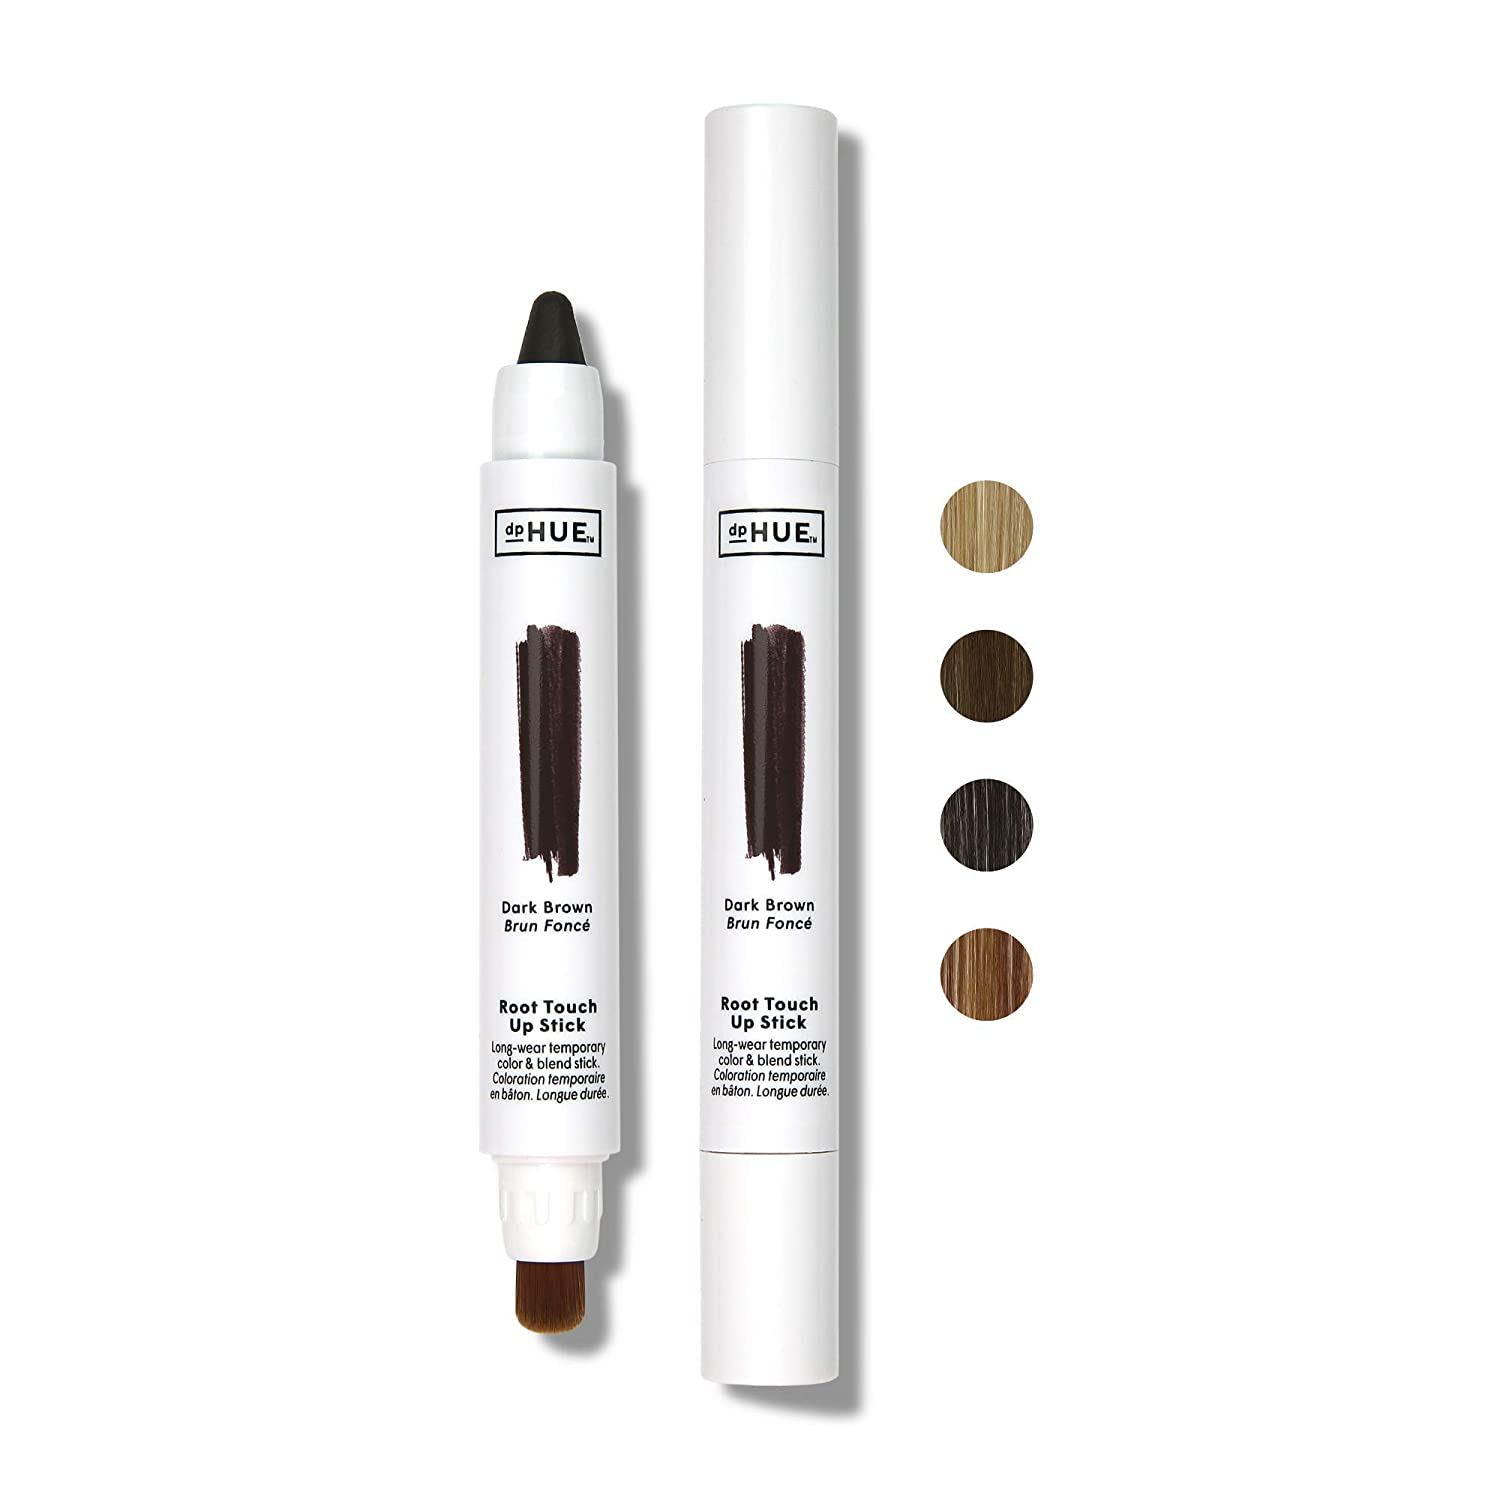 dpHUE Root Touch-Up Stick, Dark Brown - Temporary Hair Color & Blend Brush Stick - Instant, Natural-Looking Gray Root Coverage - Easy to Apply - Longwear, Sweat-Resistant Formula